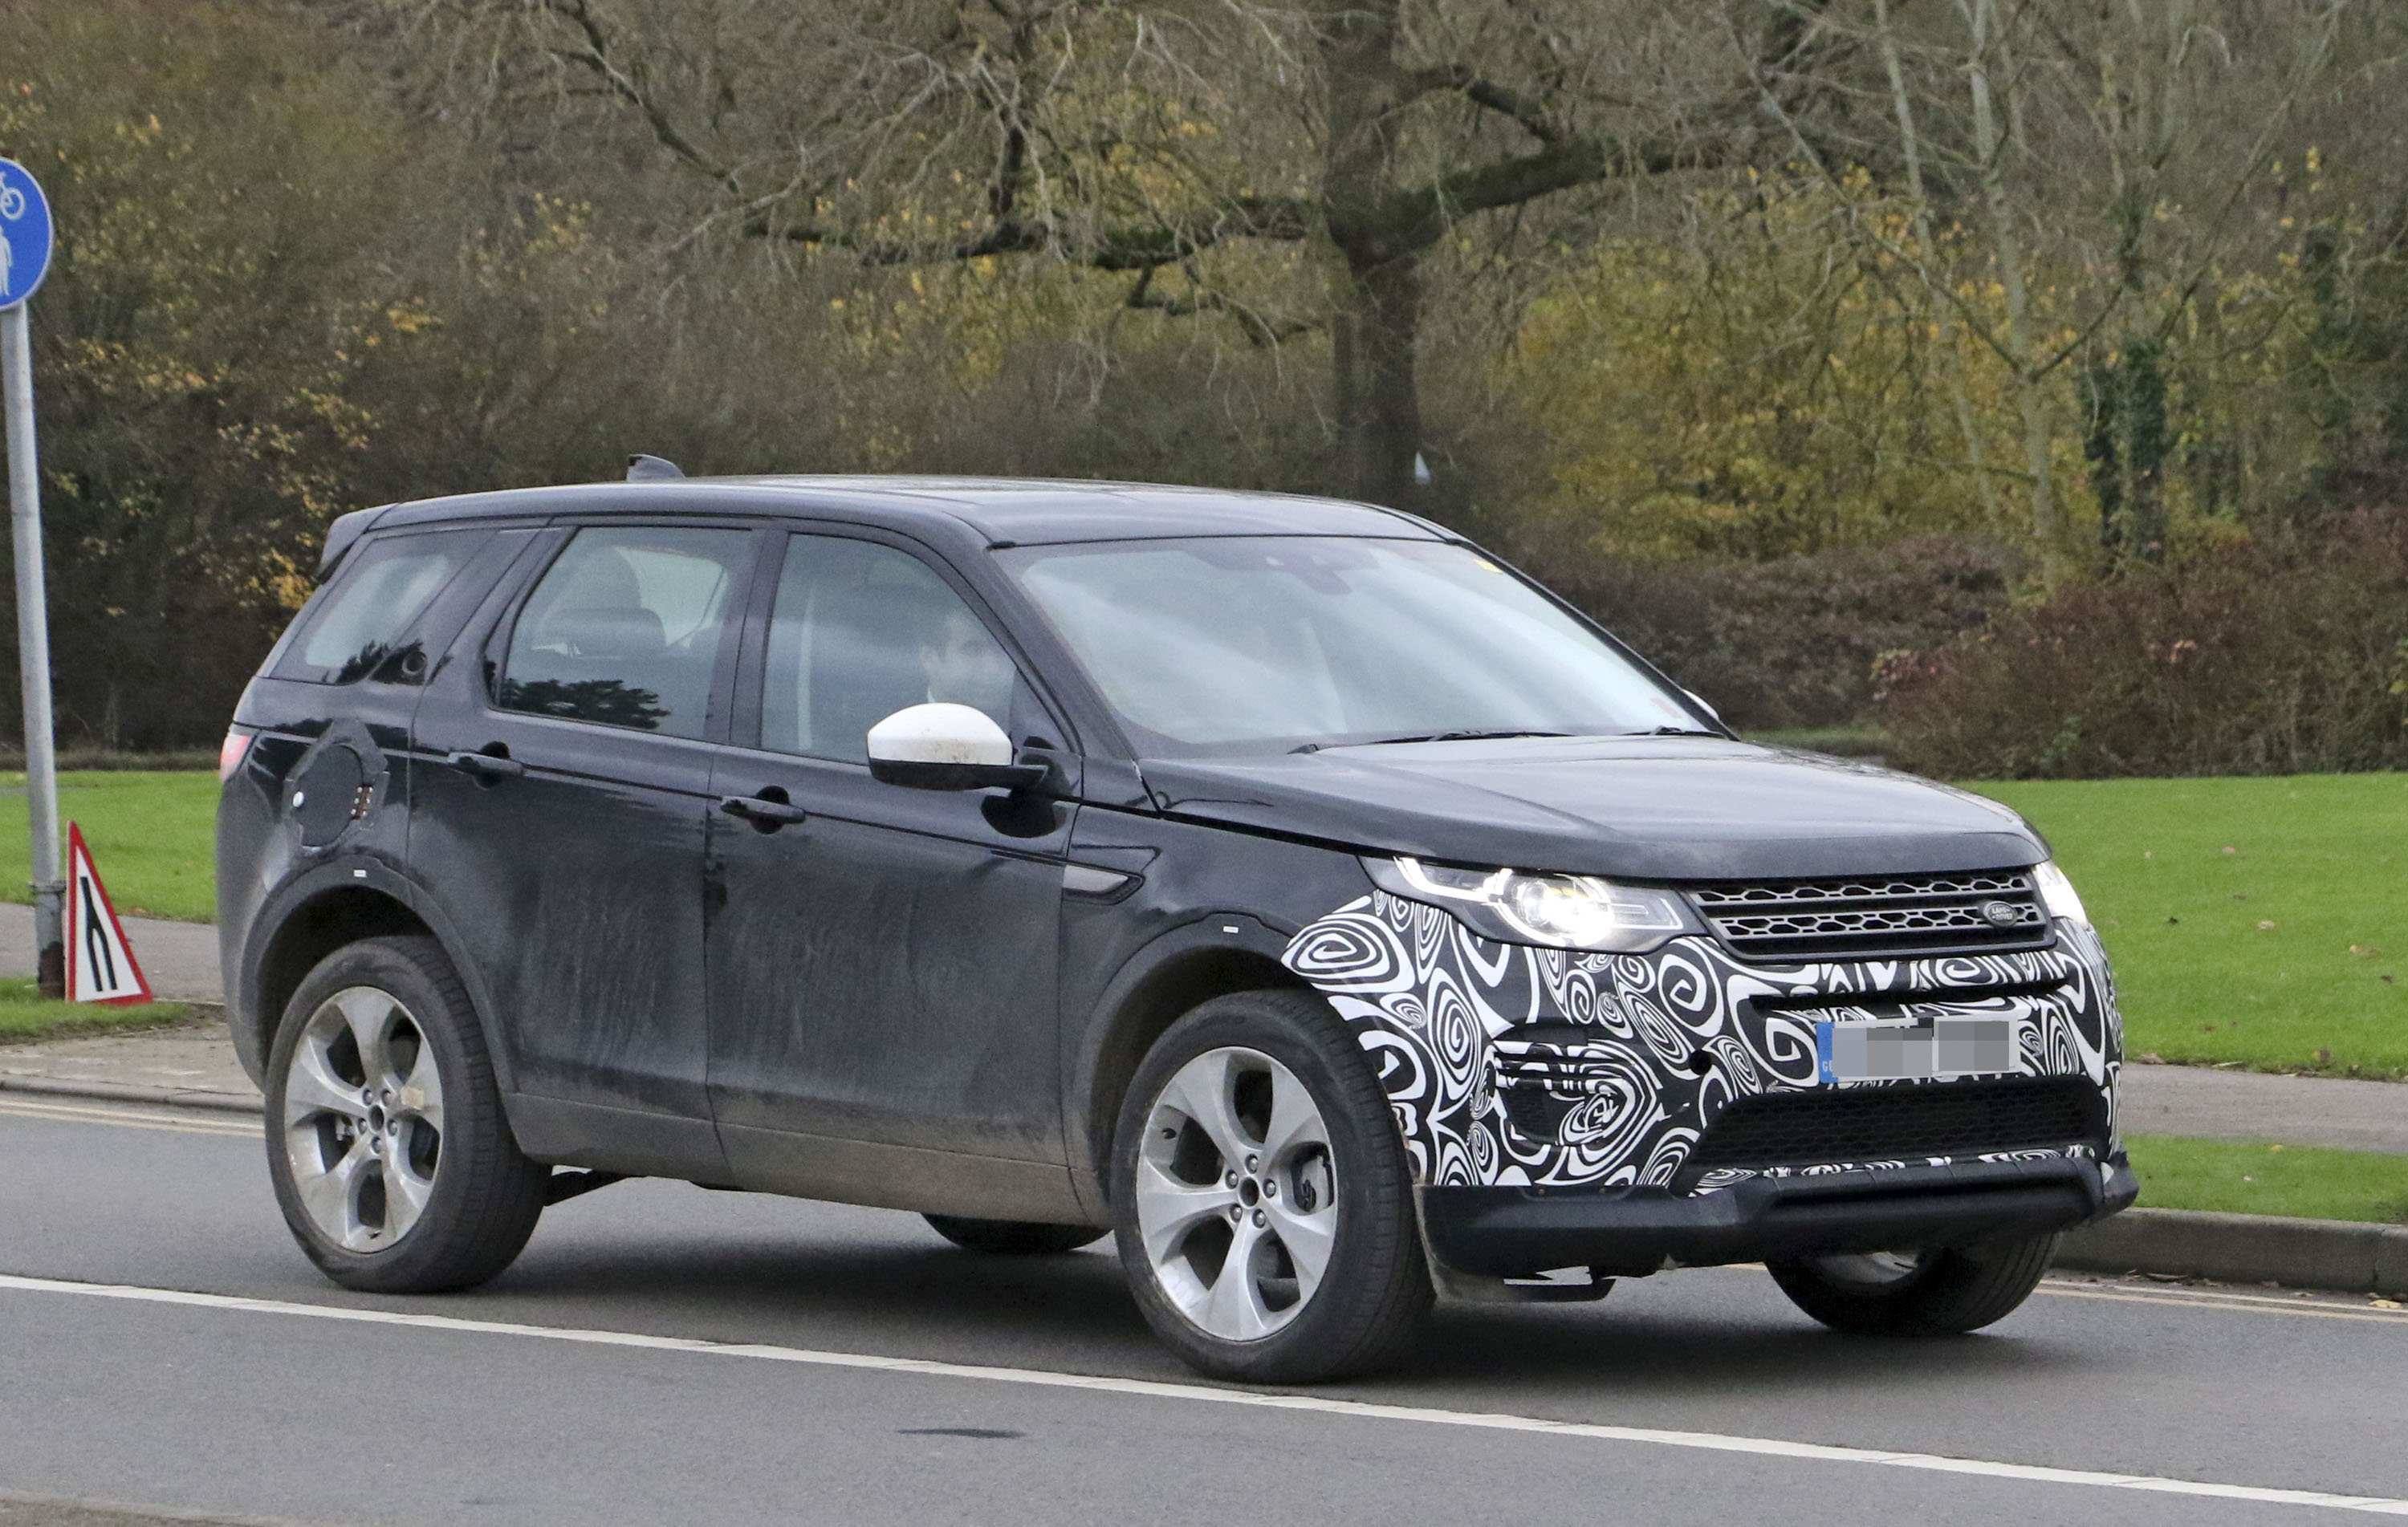 44 New 2020 Land Rover Discovery Photos for 2020 Land Rover Discovery